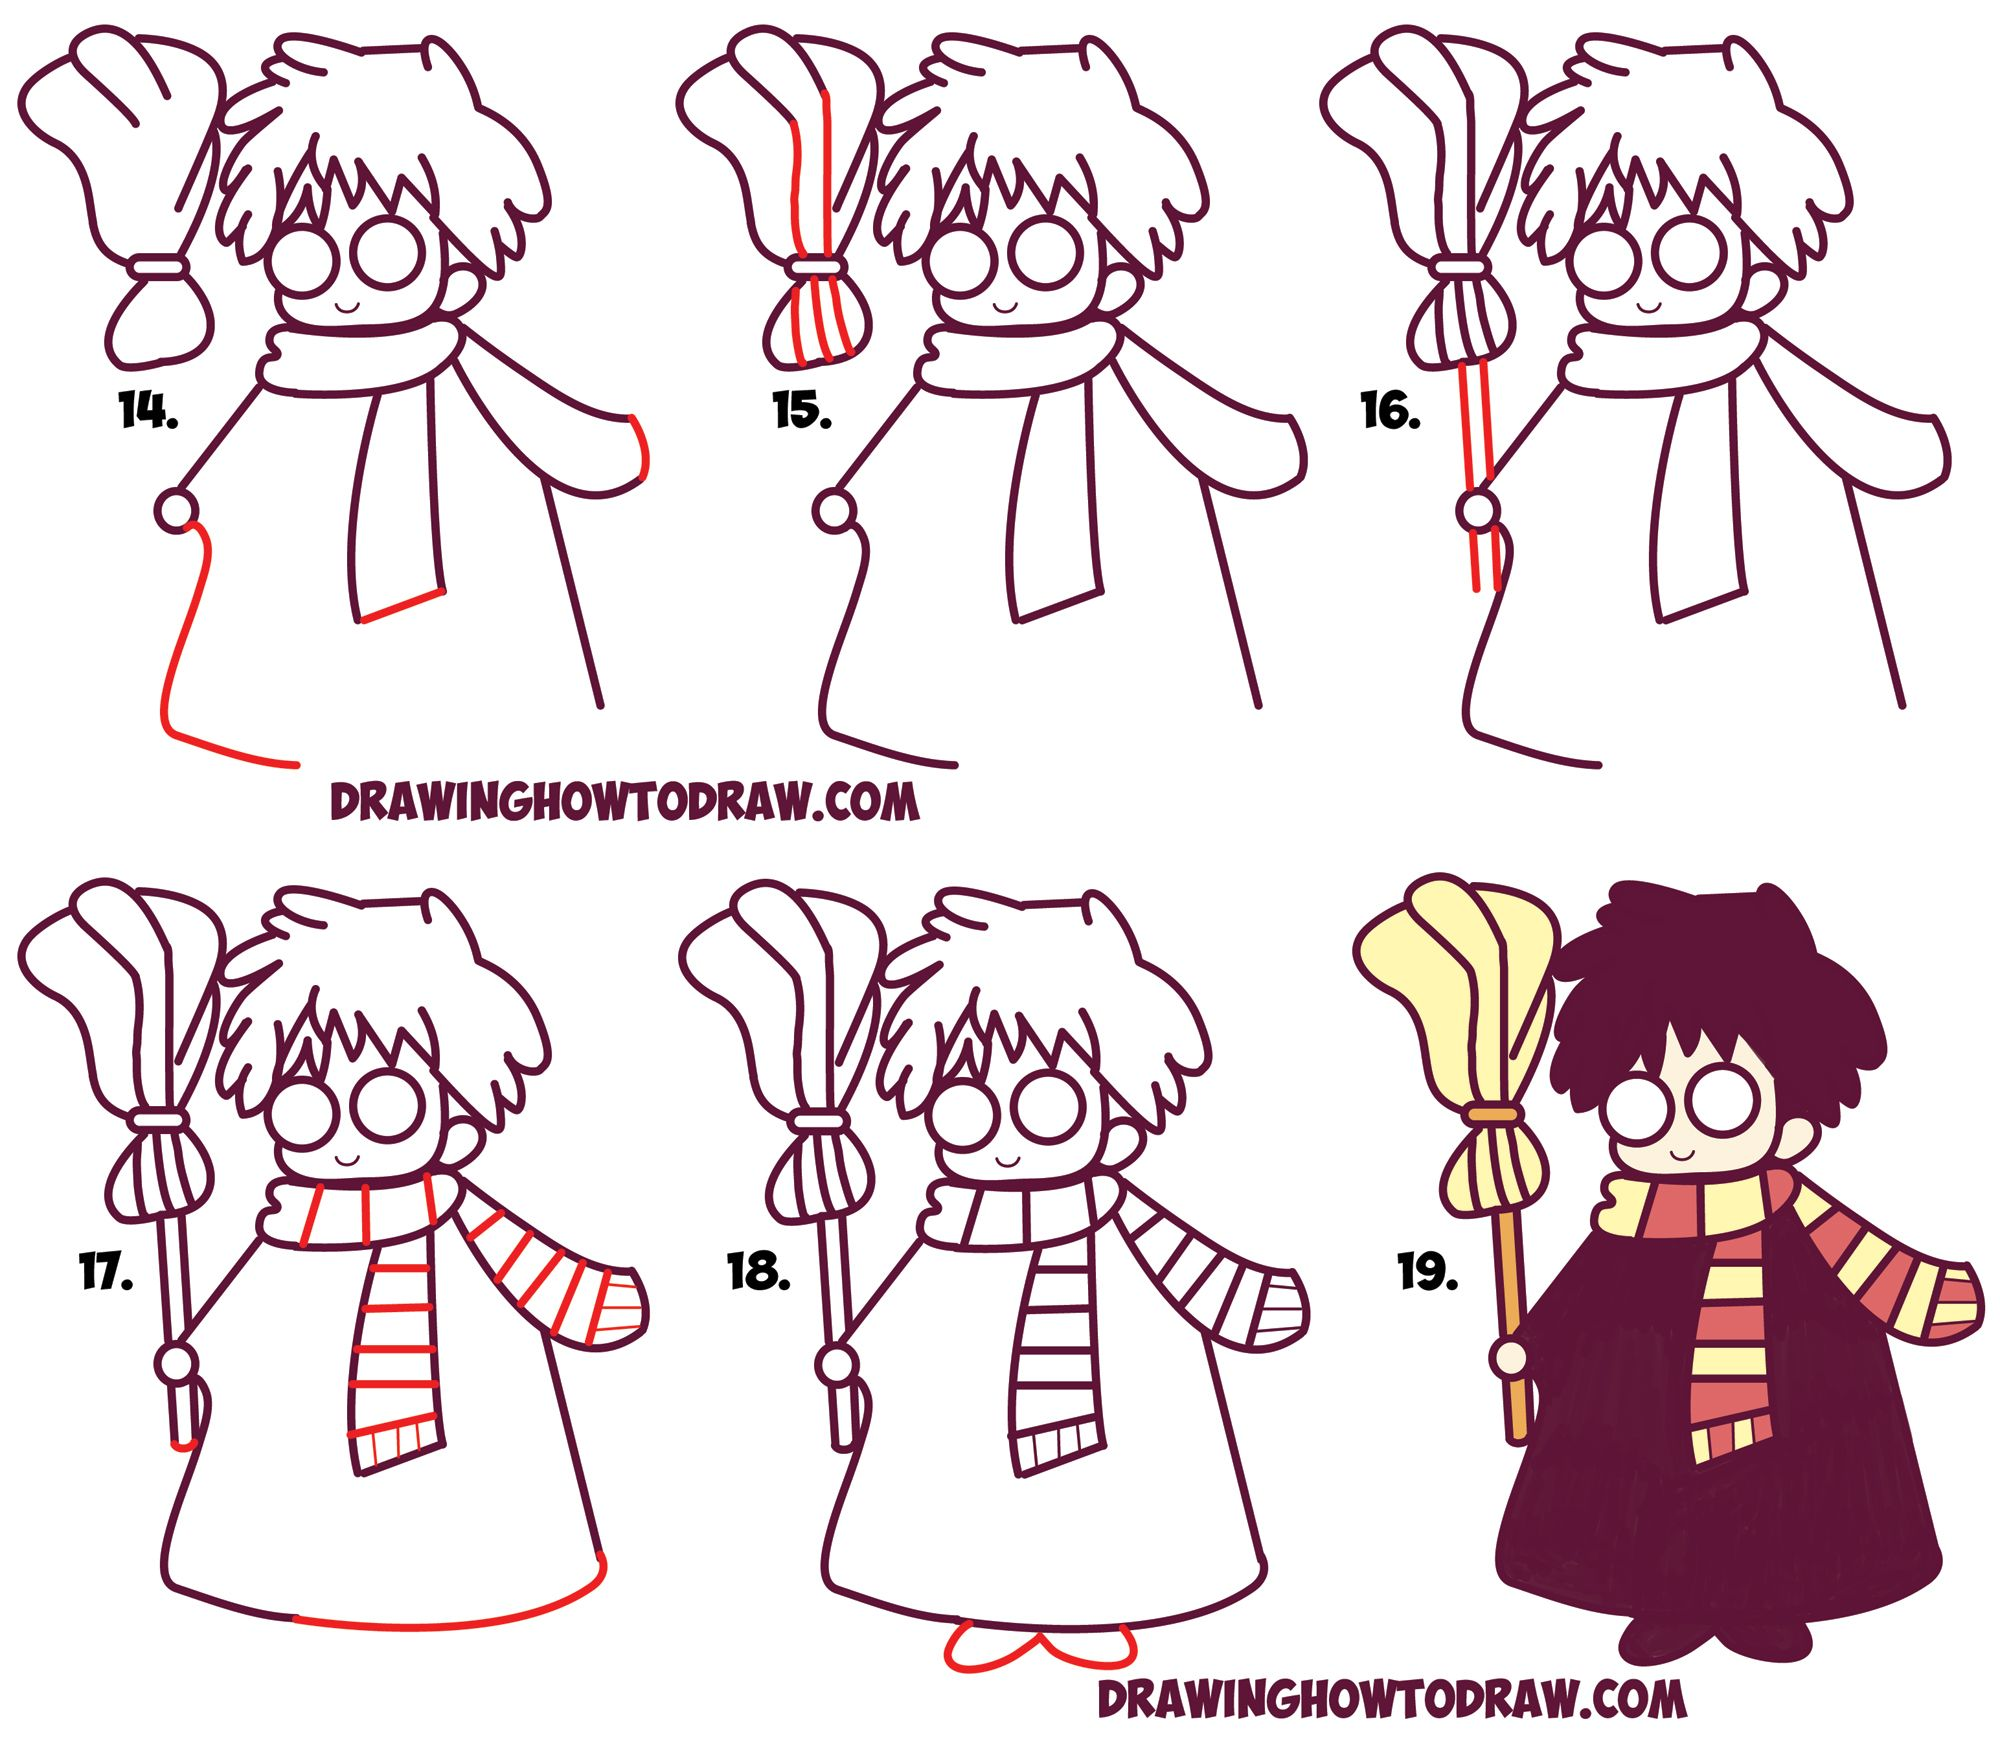 How To Draw Cute Harry Potter Chibi Kawaii Easy Step By Wire Diagrams Http Picsboxbiz Key Howtodraw Learn Simple Steps Drawing Lesson